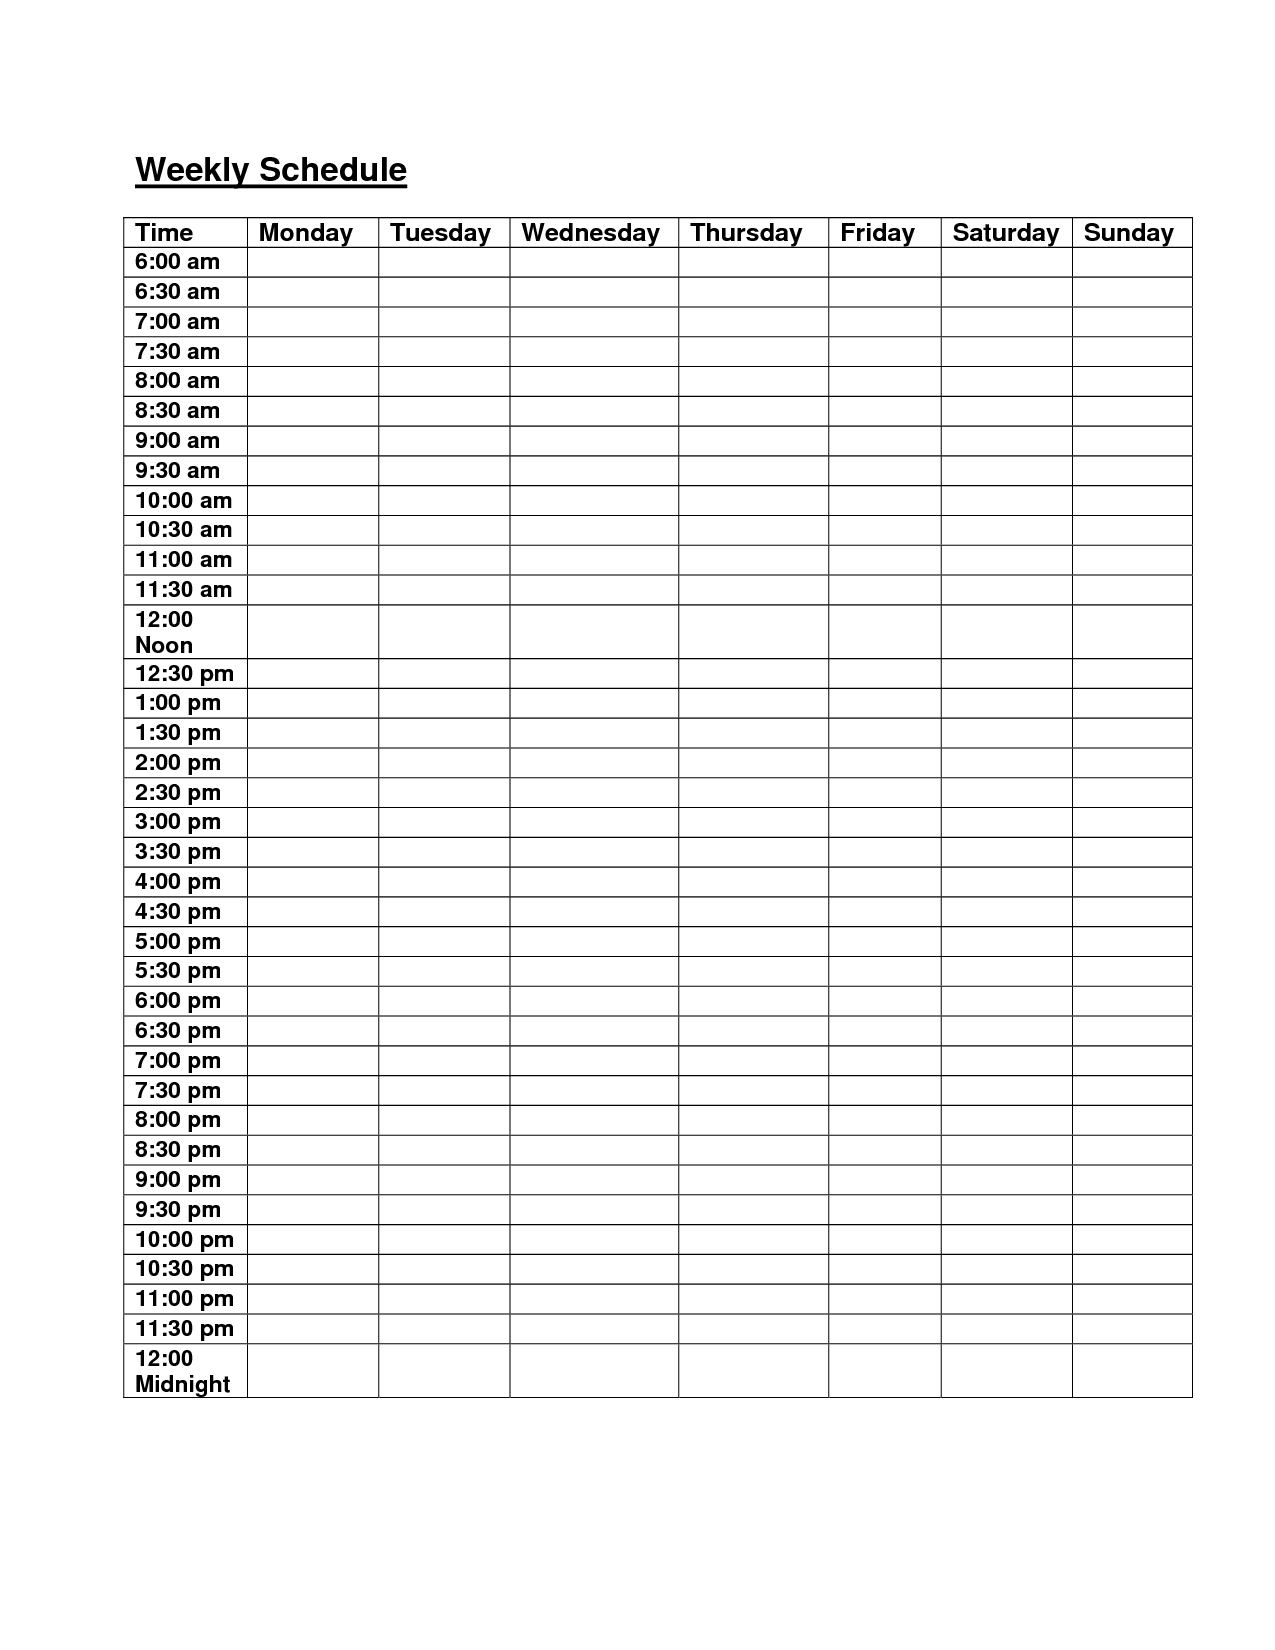 Blank Weekly Calendar Monday Through Friday | Daily Schedule intended for Daily Calendar Template 30 Minute Increments